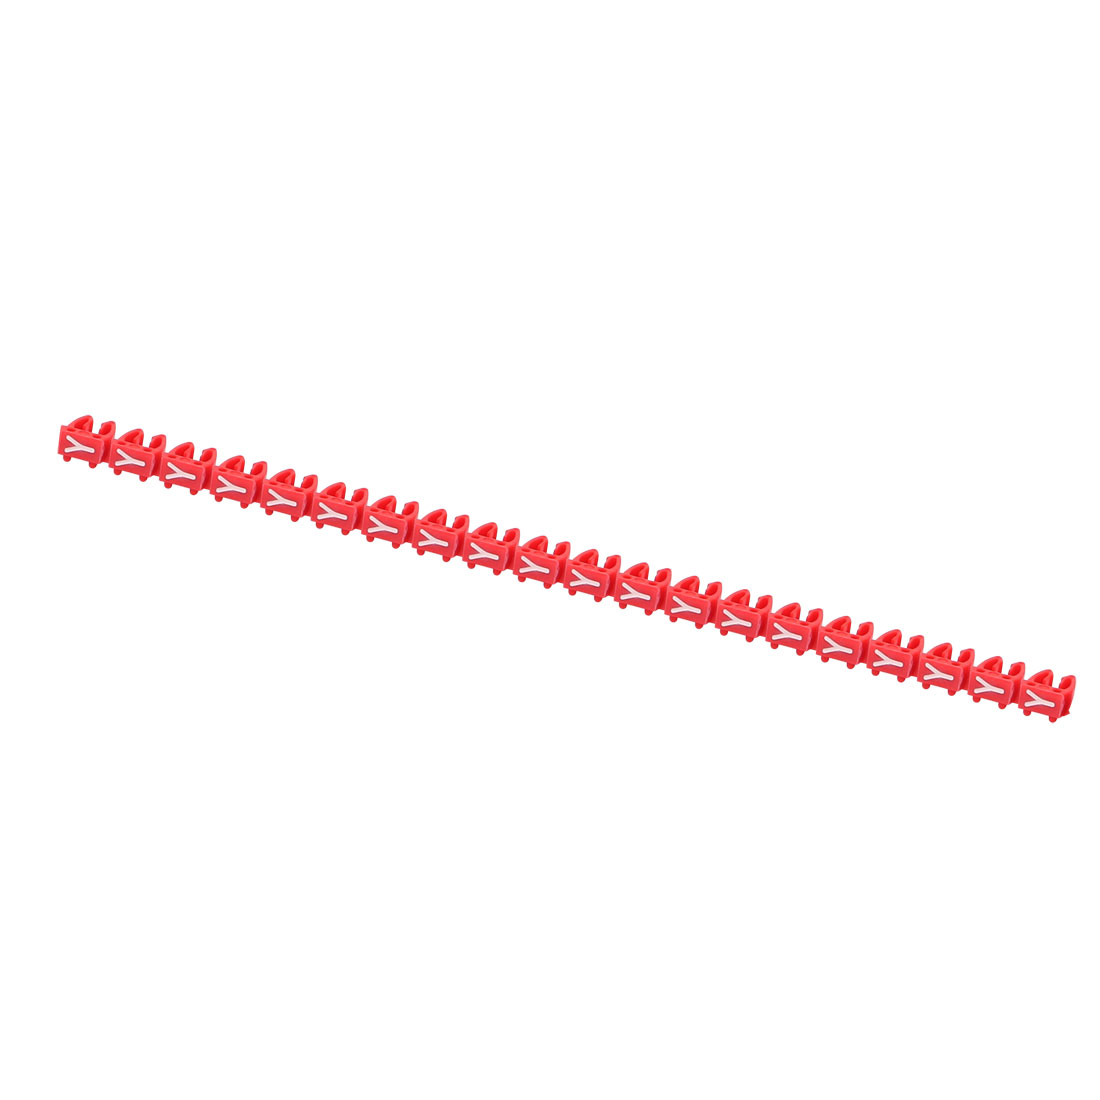 20 Pcs Letters Y Network Cable Labels Markers Red for 4.0-6.0mm Dia Cable